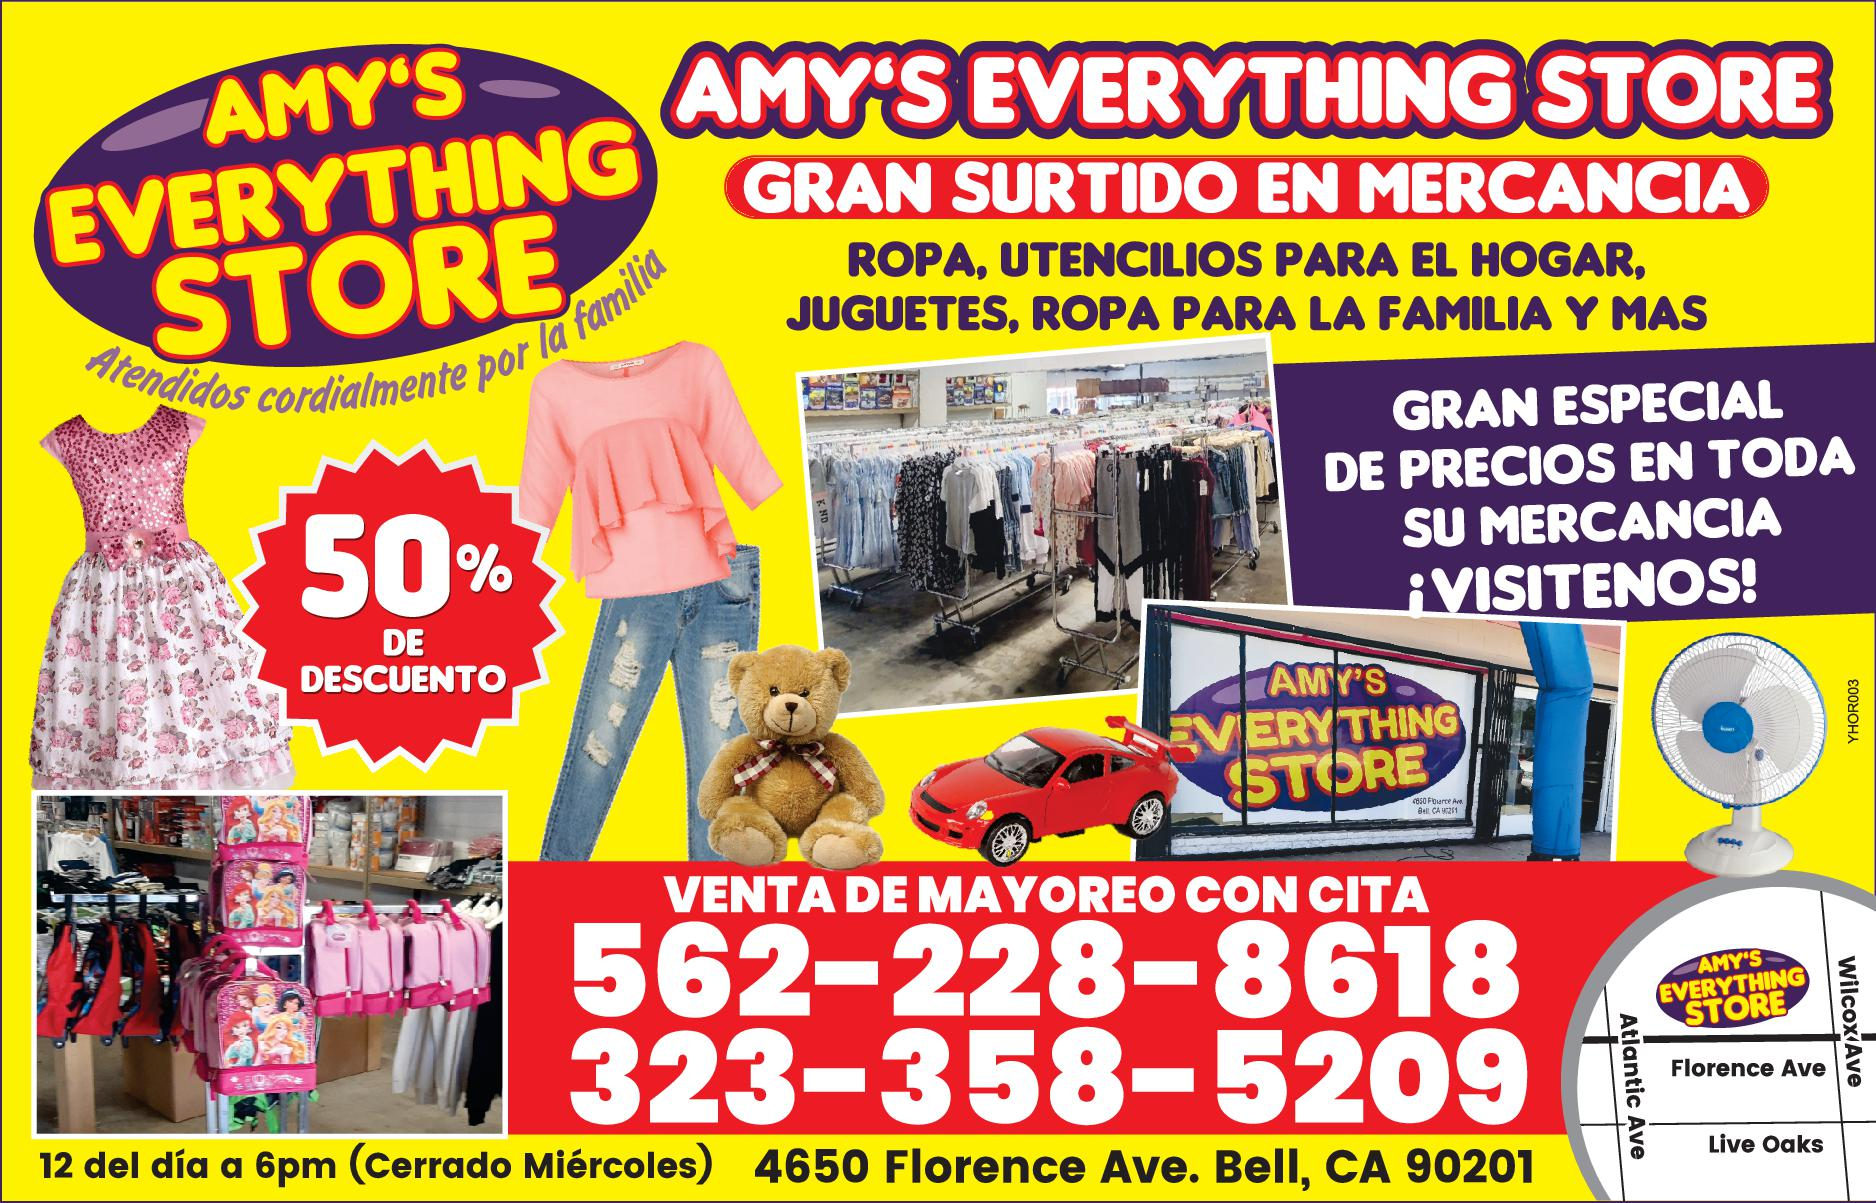 AMYS EVERTHING STORE